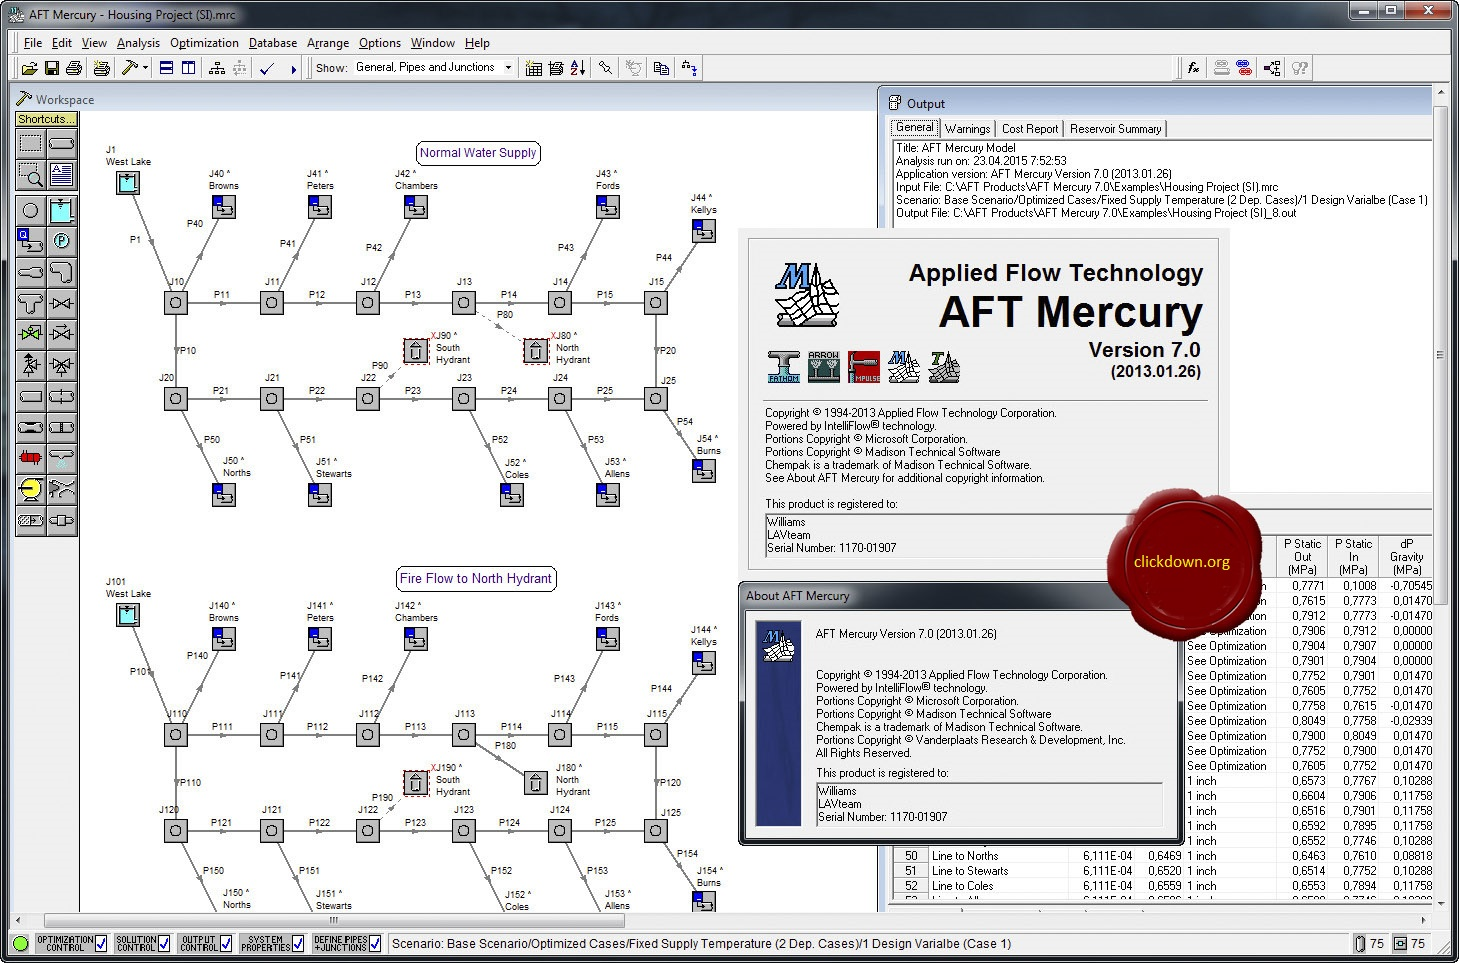 Working with AFT Mercury 7.0 full license